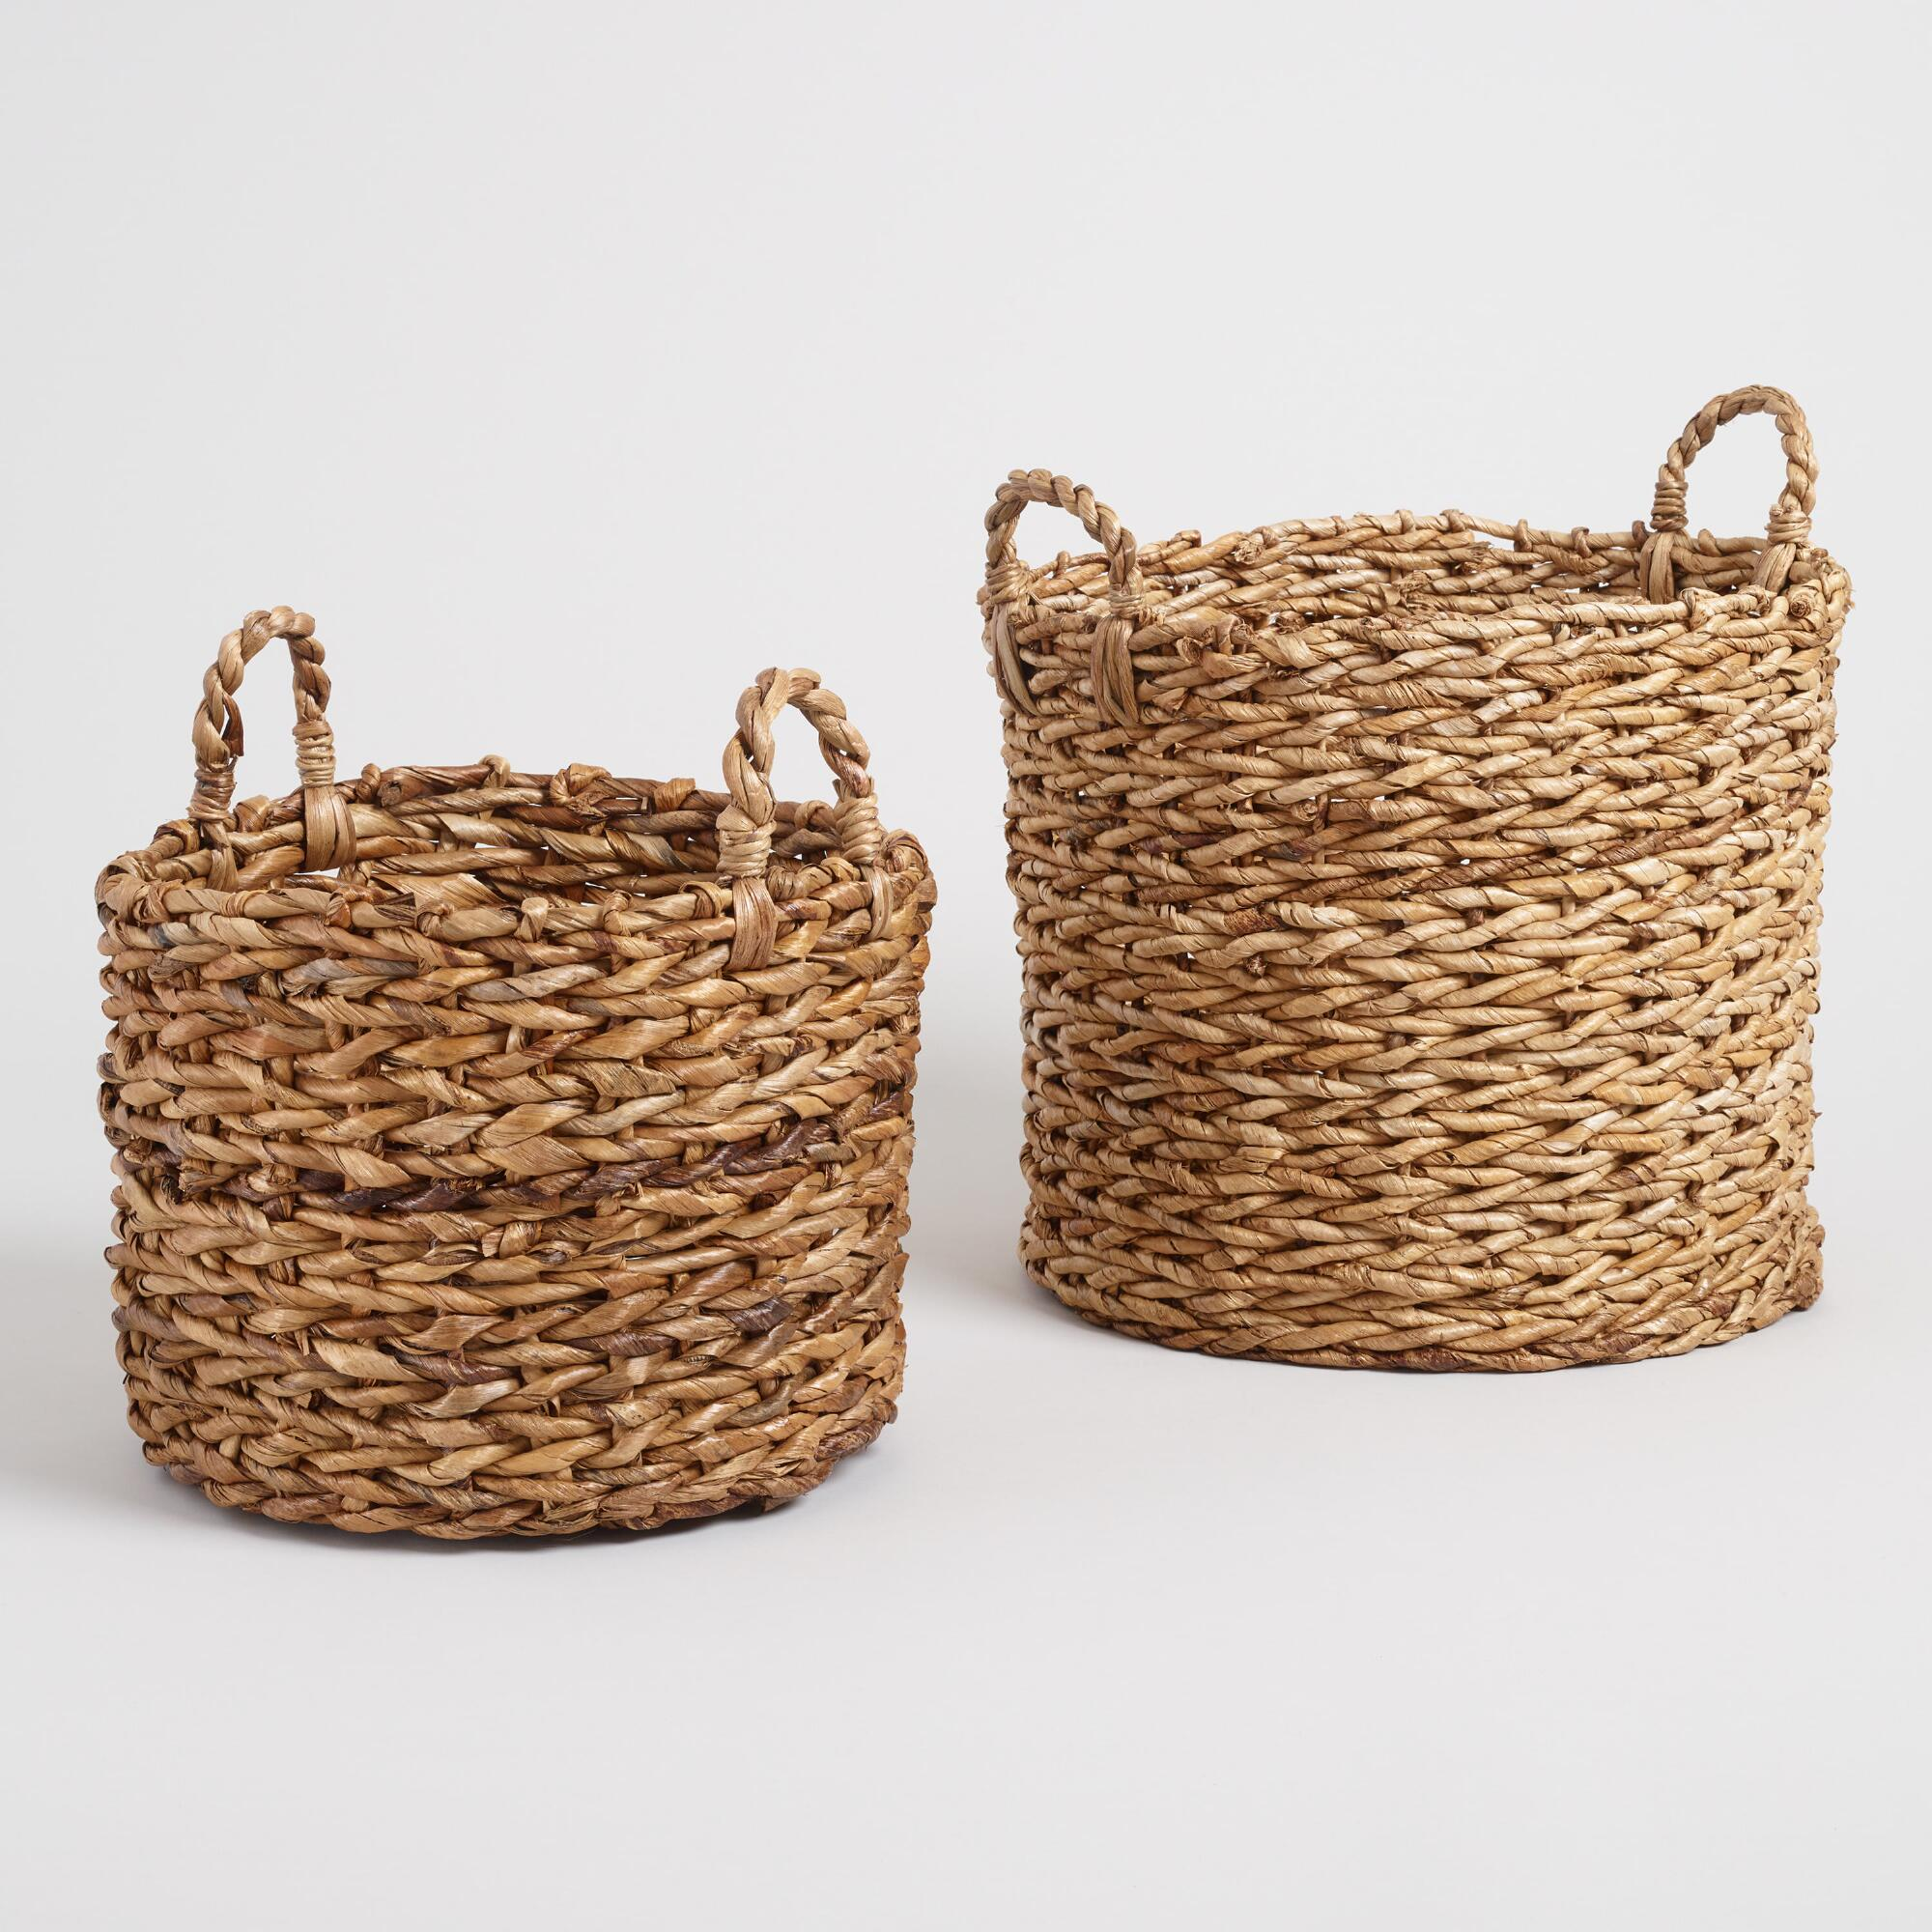 Natural Banana Leaf Multi Weave Naomi Baskets - Small by World Market Small